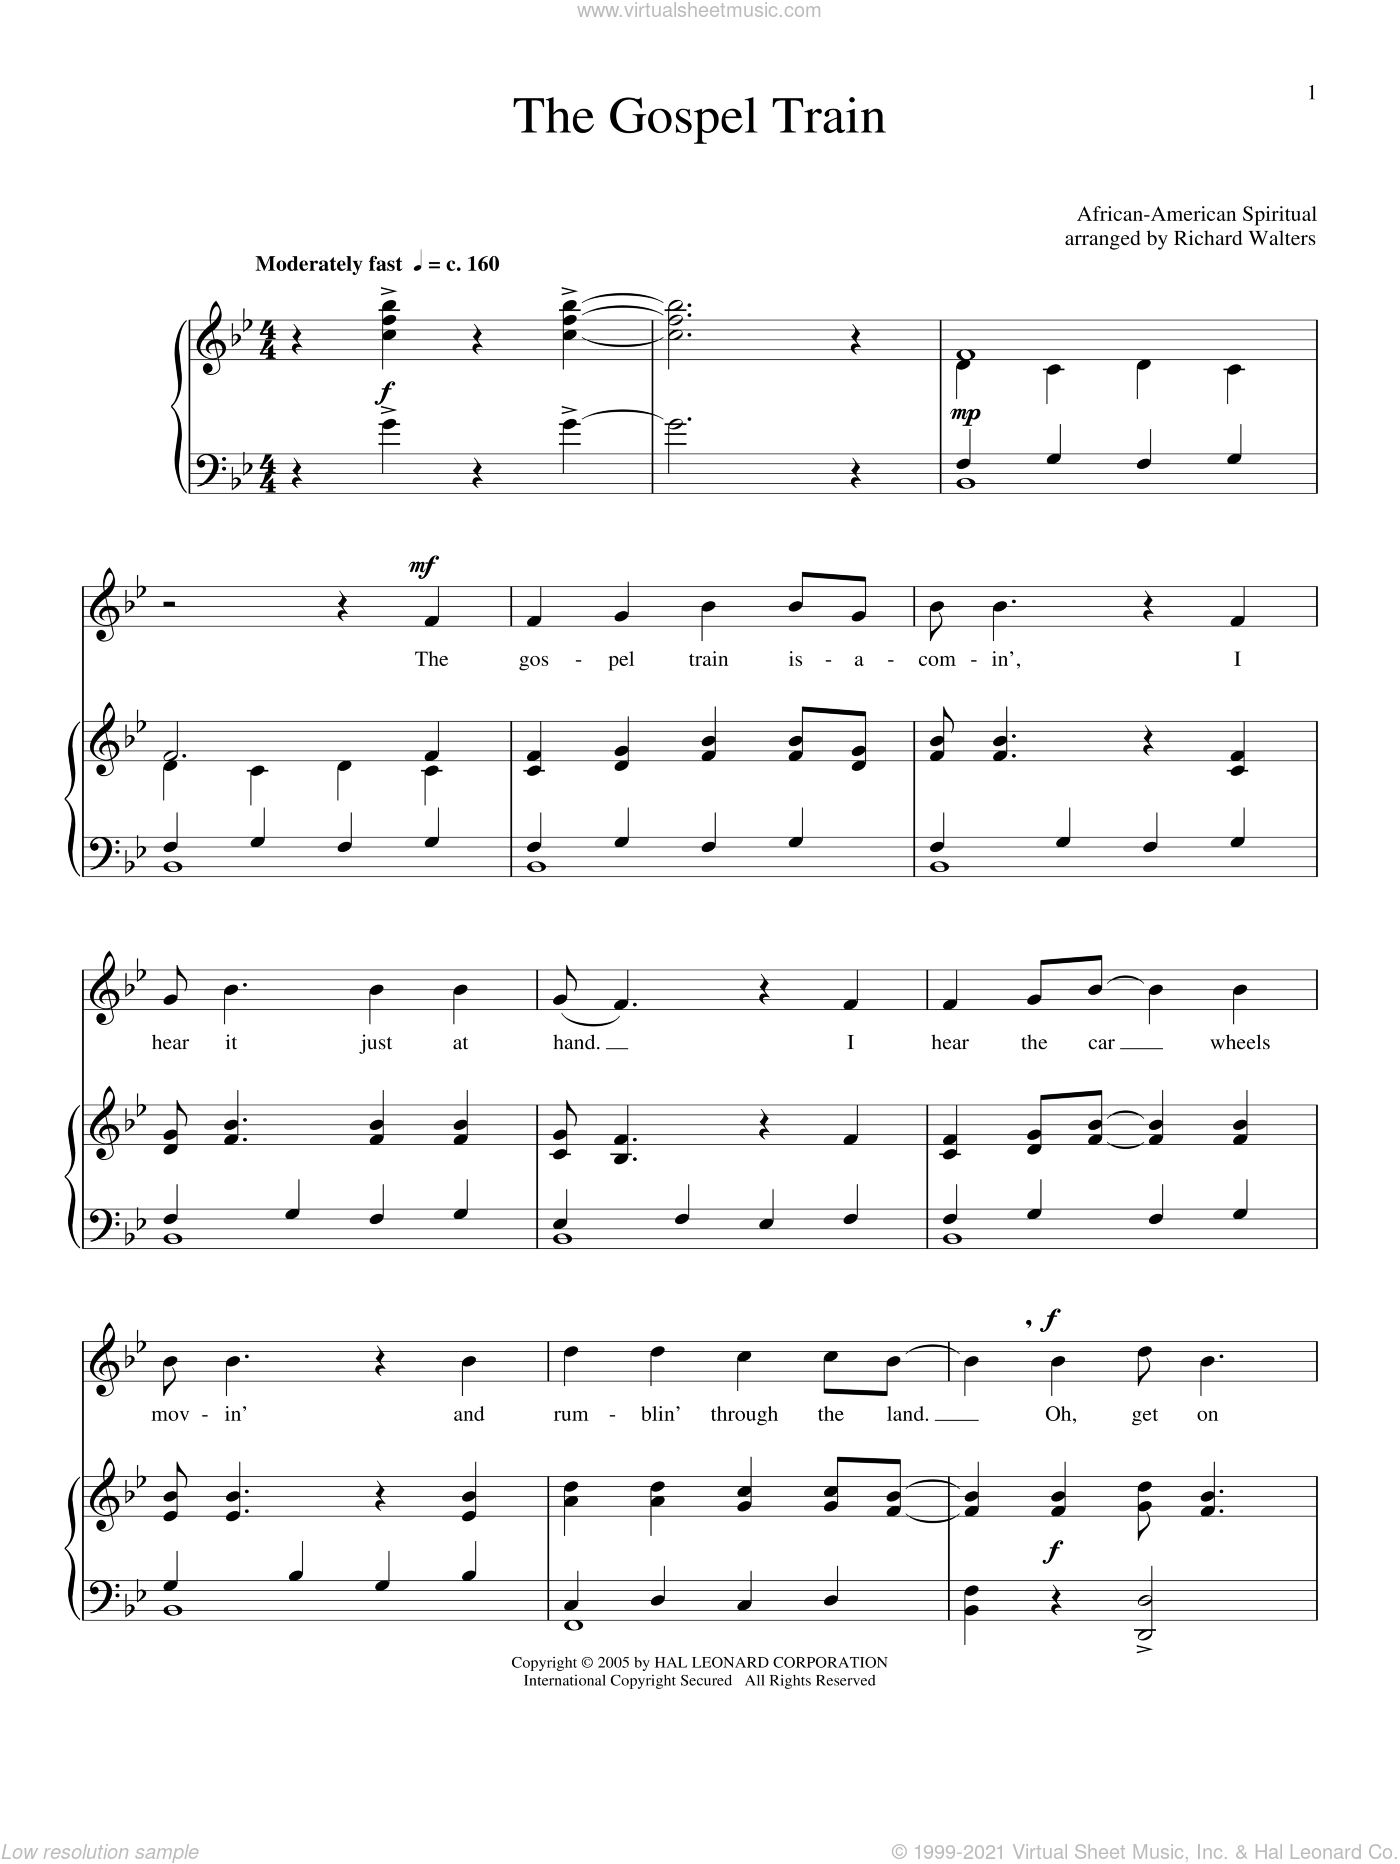 The Gospel Train sheet music for voice and piano